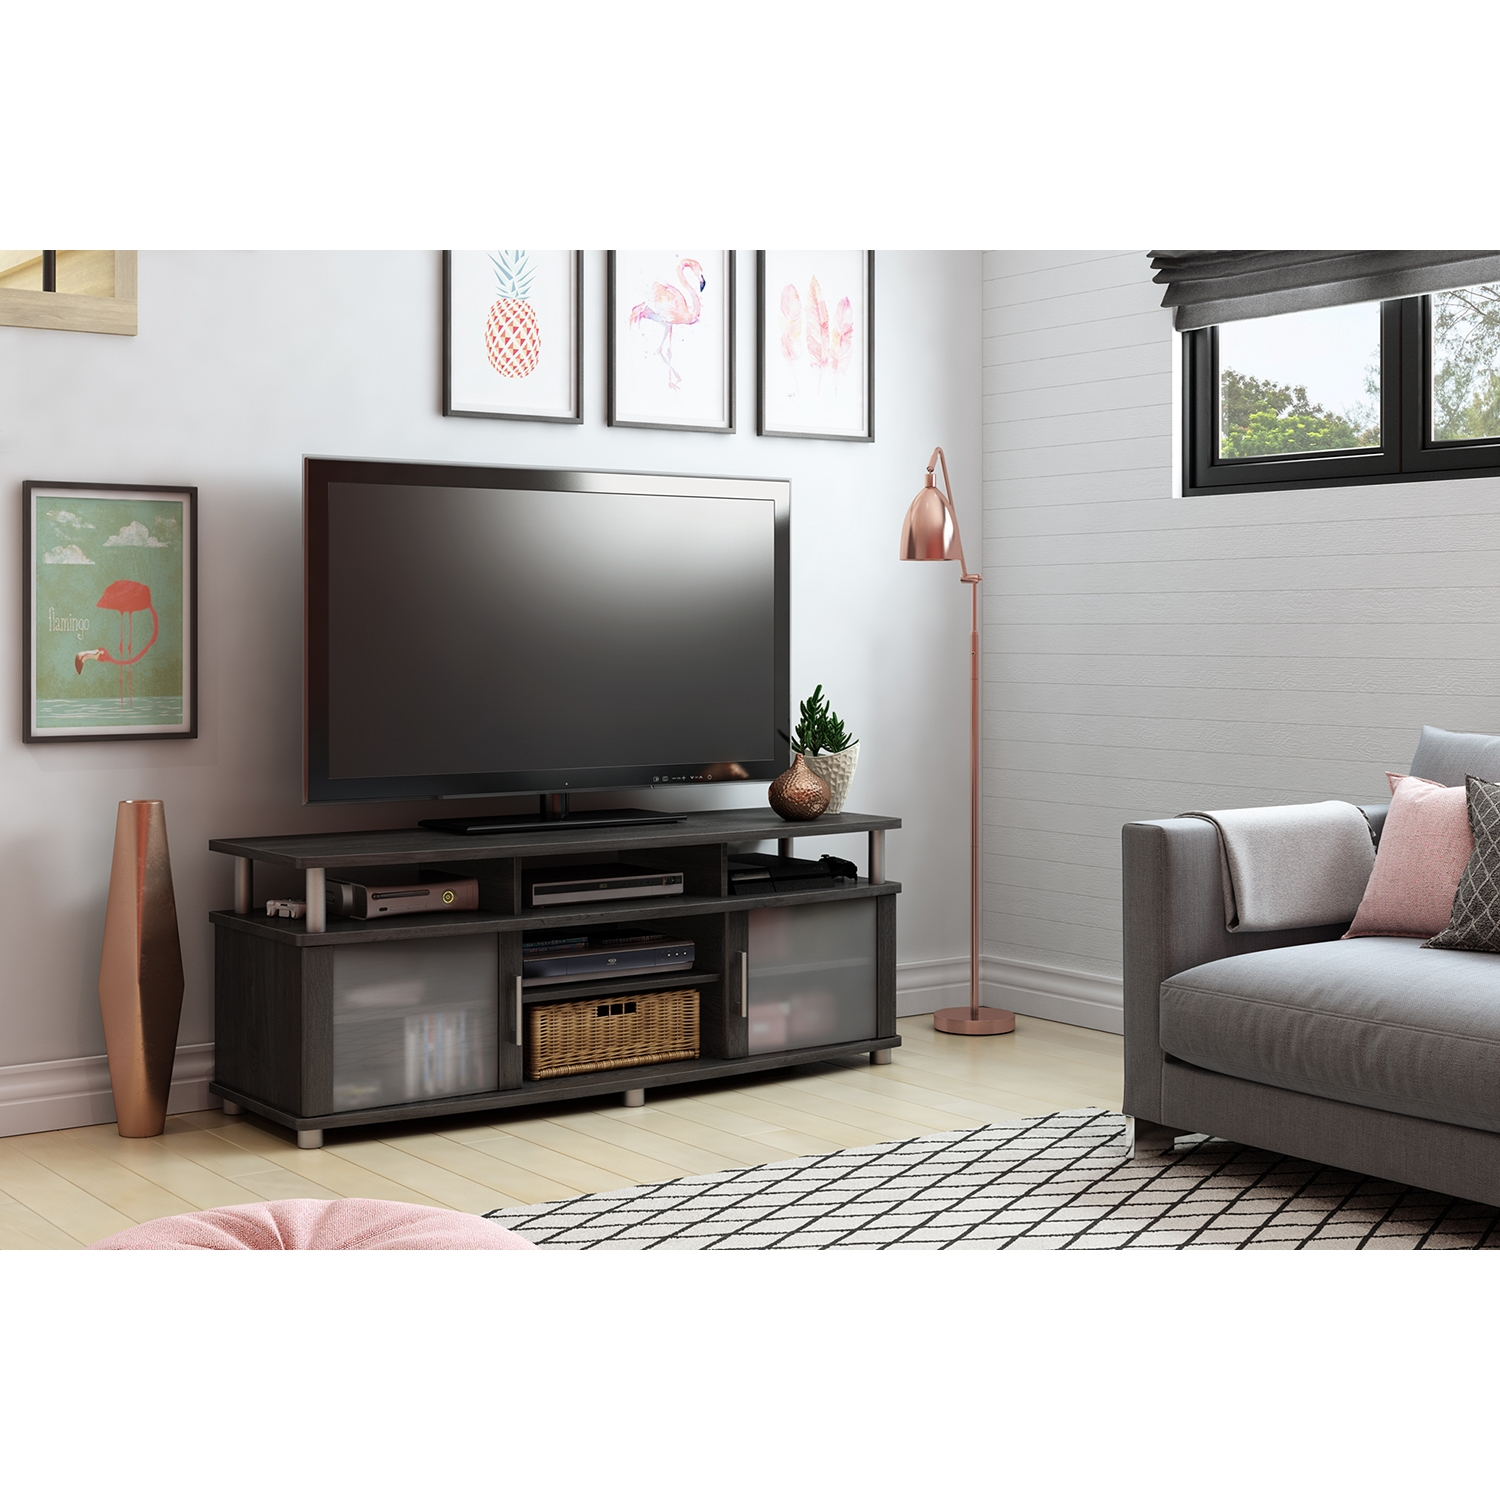 City Life TV Stand - Gray Oak - SS-10128